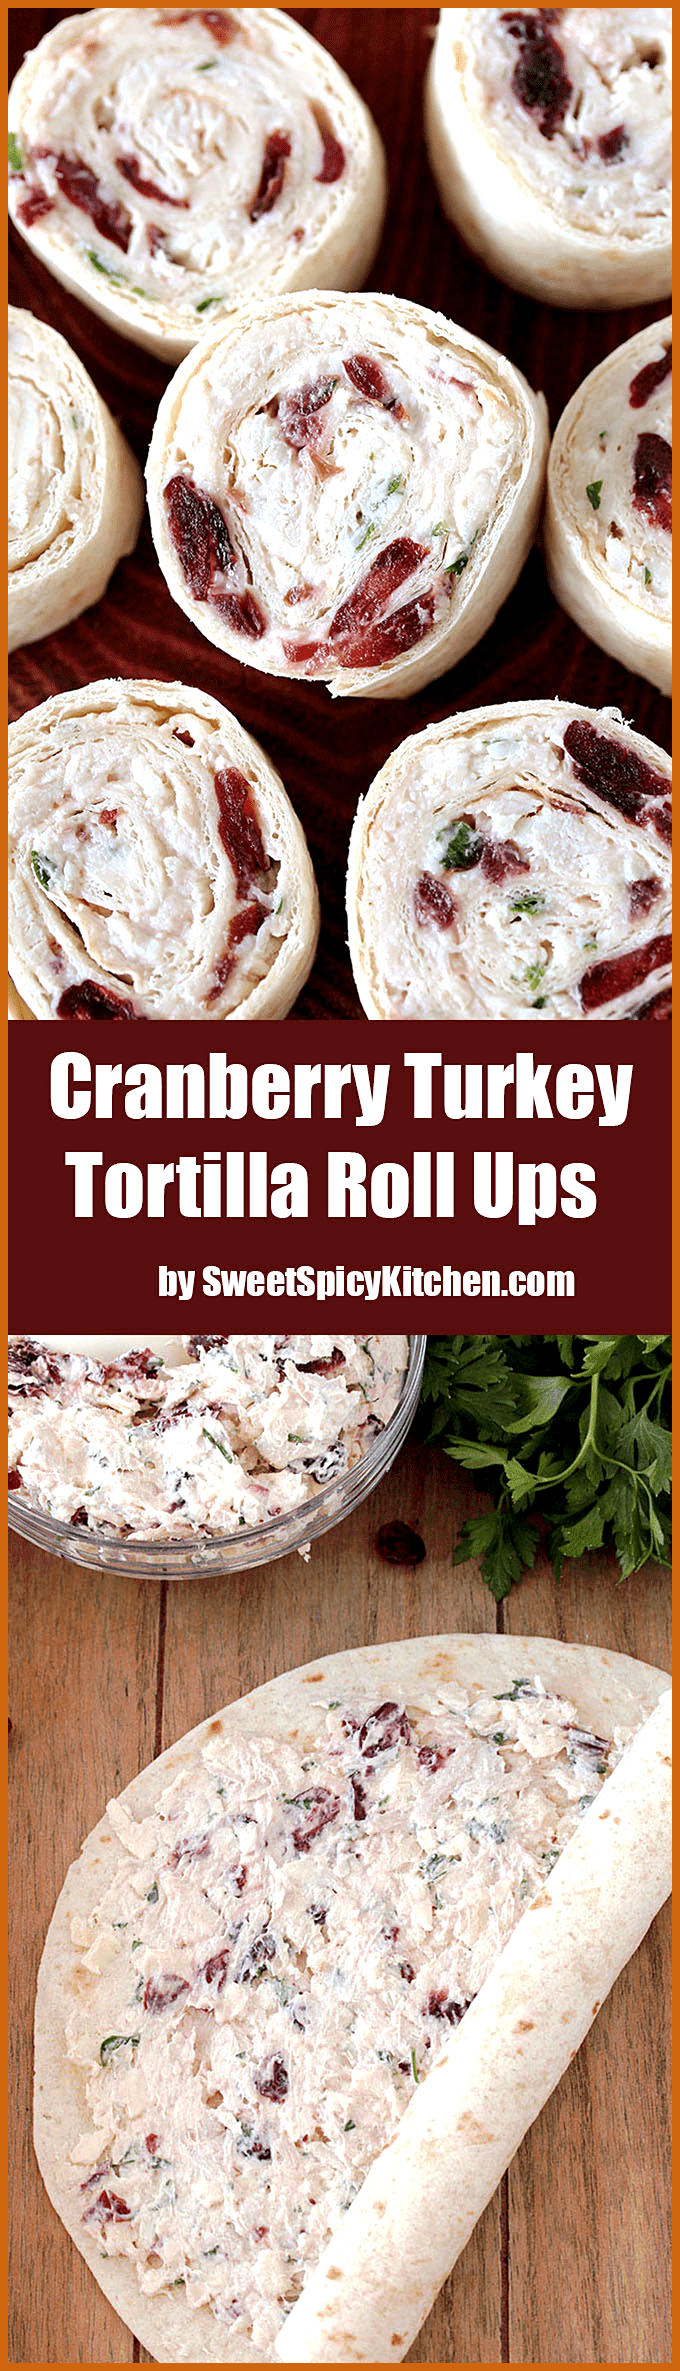 Cranberry Turkey Tortilla Roll Ups Cranberry Turkey Tortilla Roll Ups quick and easy bite size appetizer The Effective Pictures We Offer You About holiday appetierz savor...